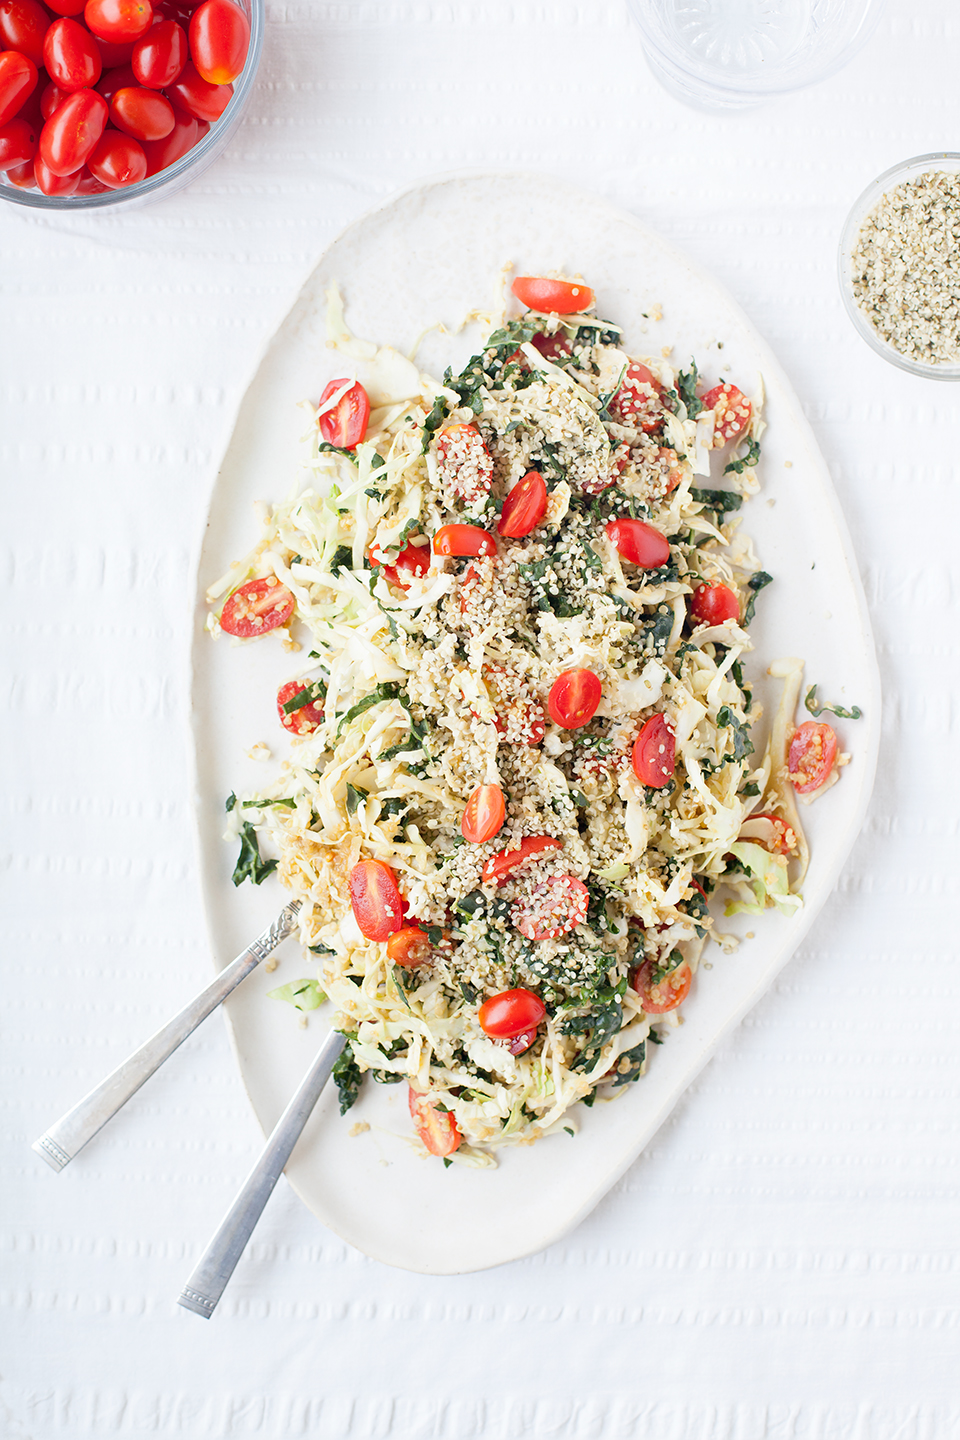 Simple Summer Salad | Kale and Cabbage Salad with Creamy Nutritional Yeast Dressing | Vegan, gluten free, and paleo. | Loveleaf Co.